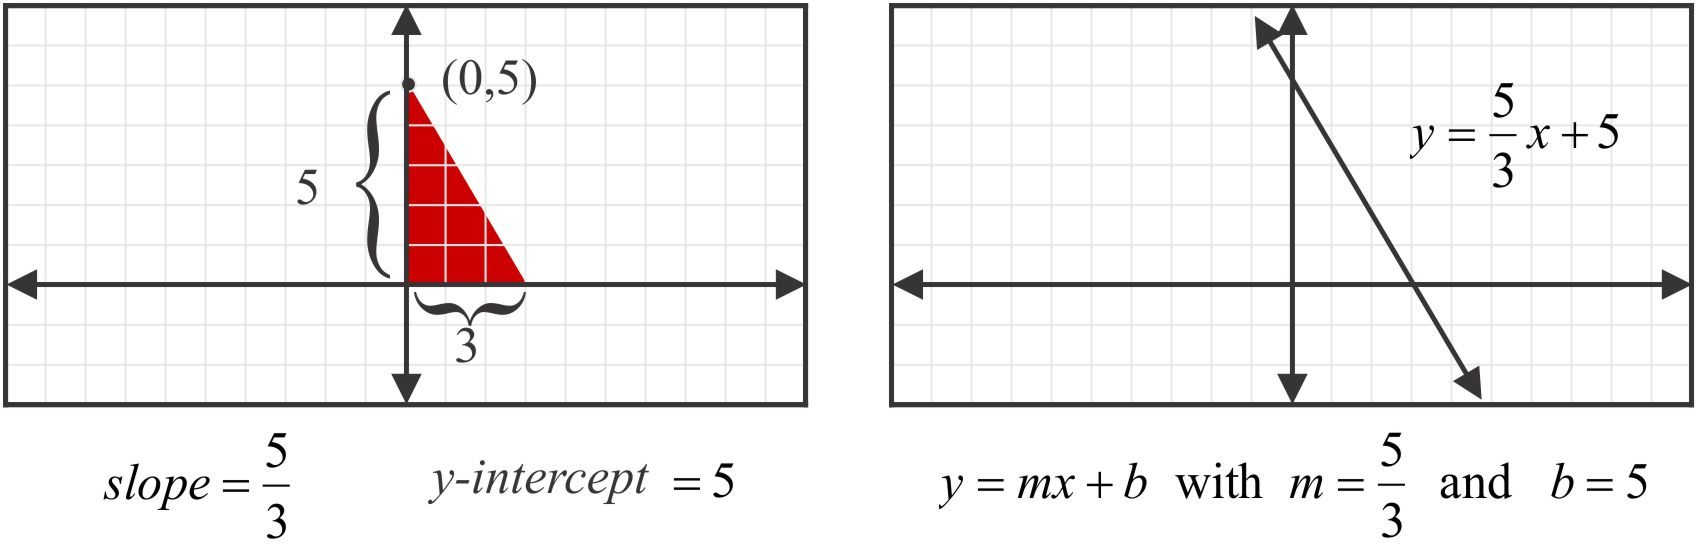 Slope intercept form of a linear equation mathpowerblog quick how to falaconquin